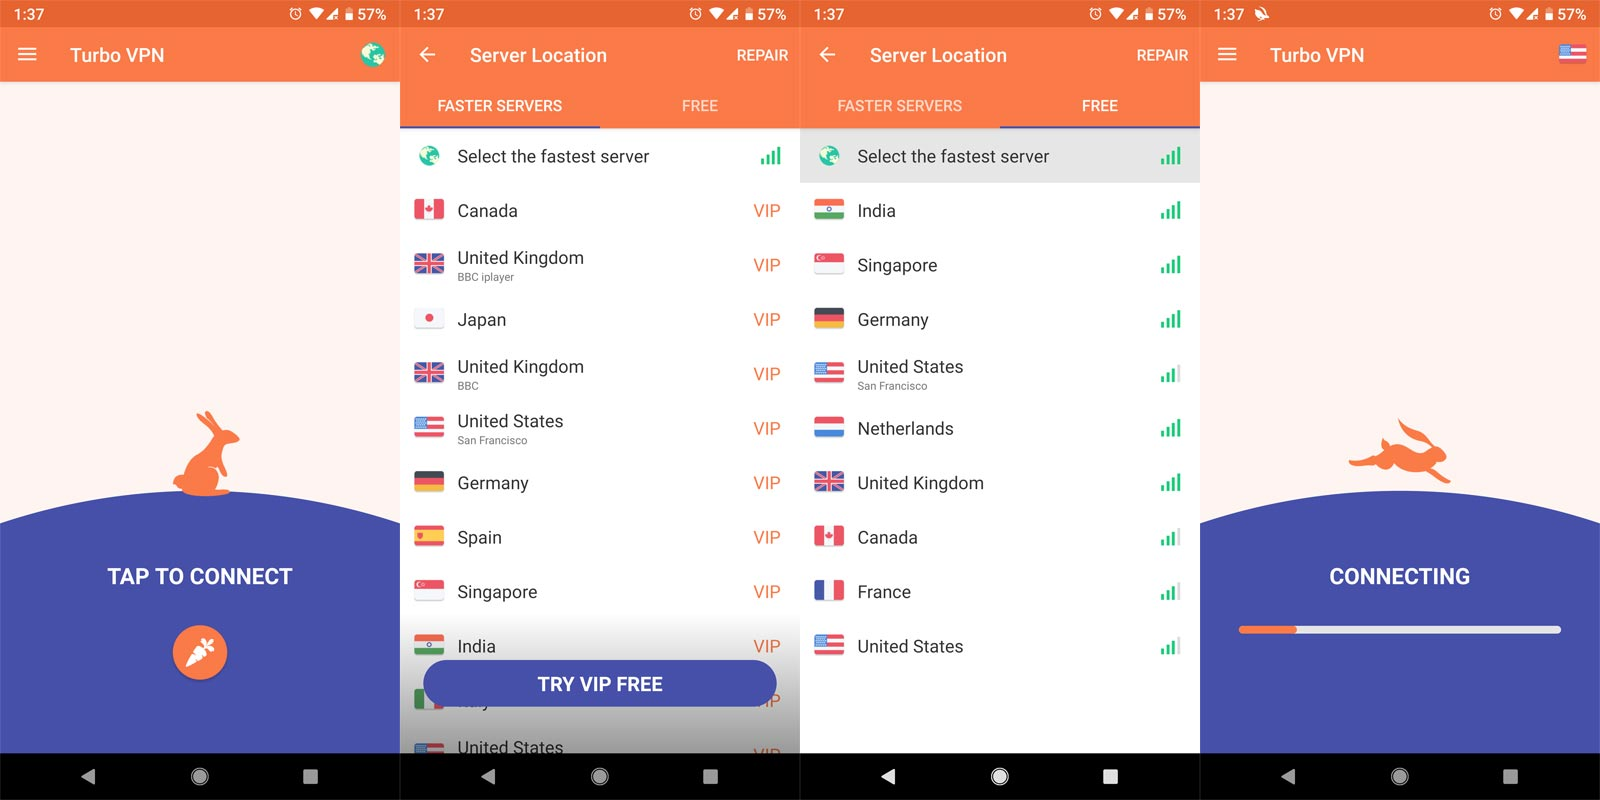 Turbo VPN app screenshots